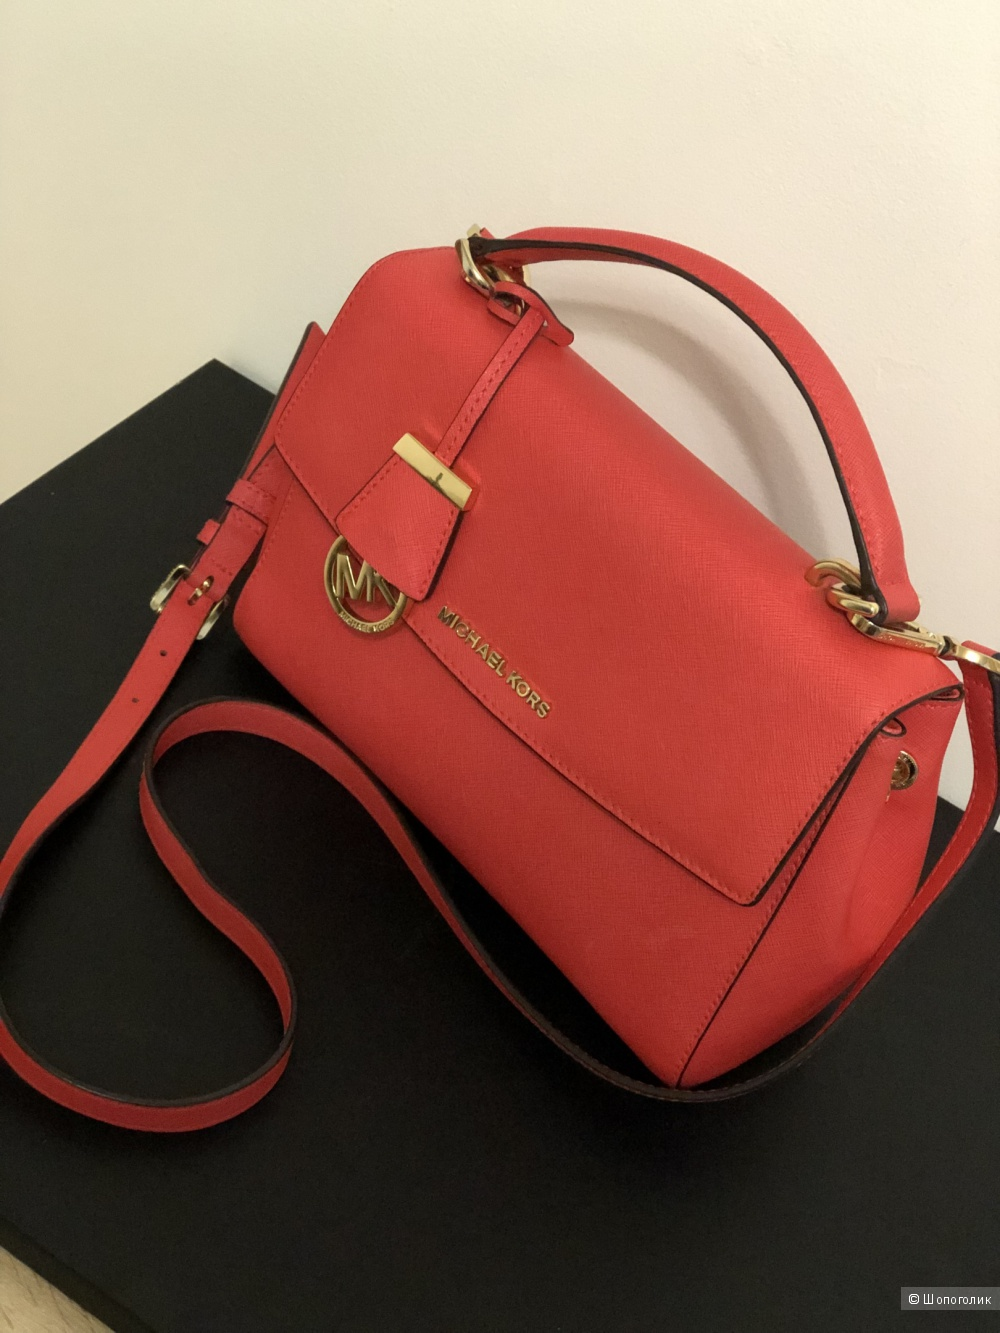 Michael Kors Ava Small Coral Reef